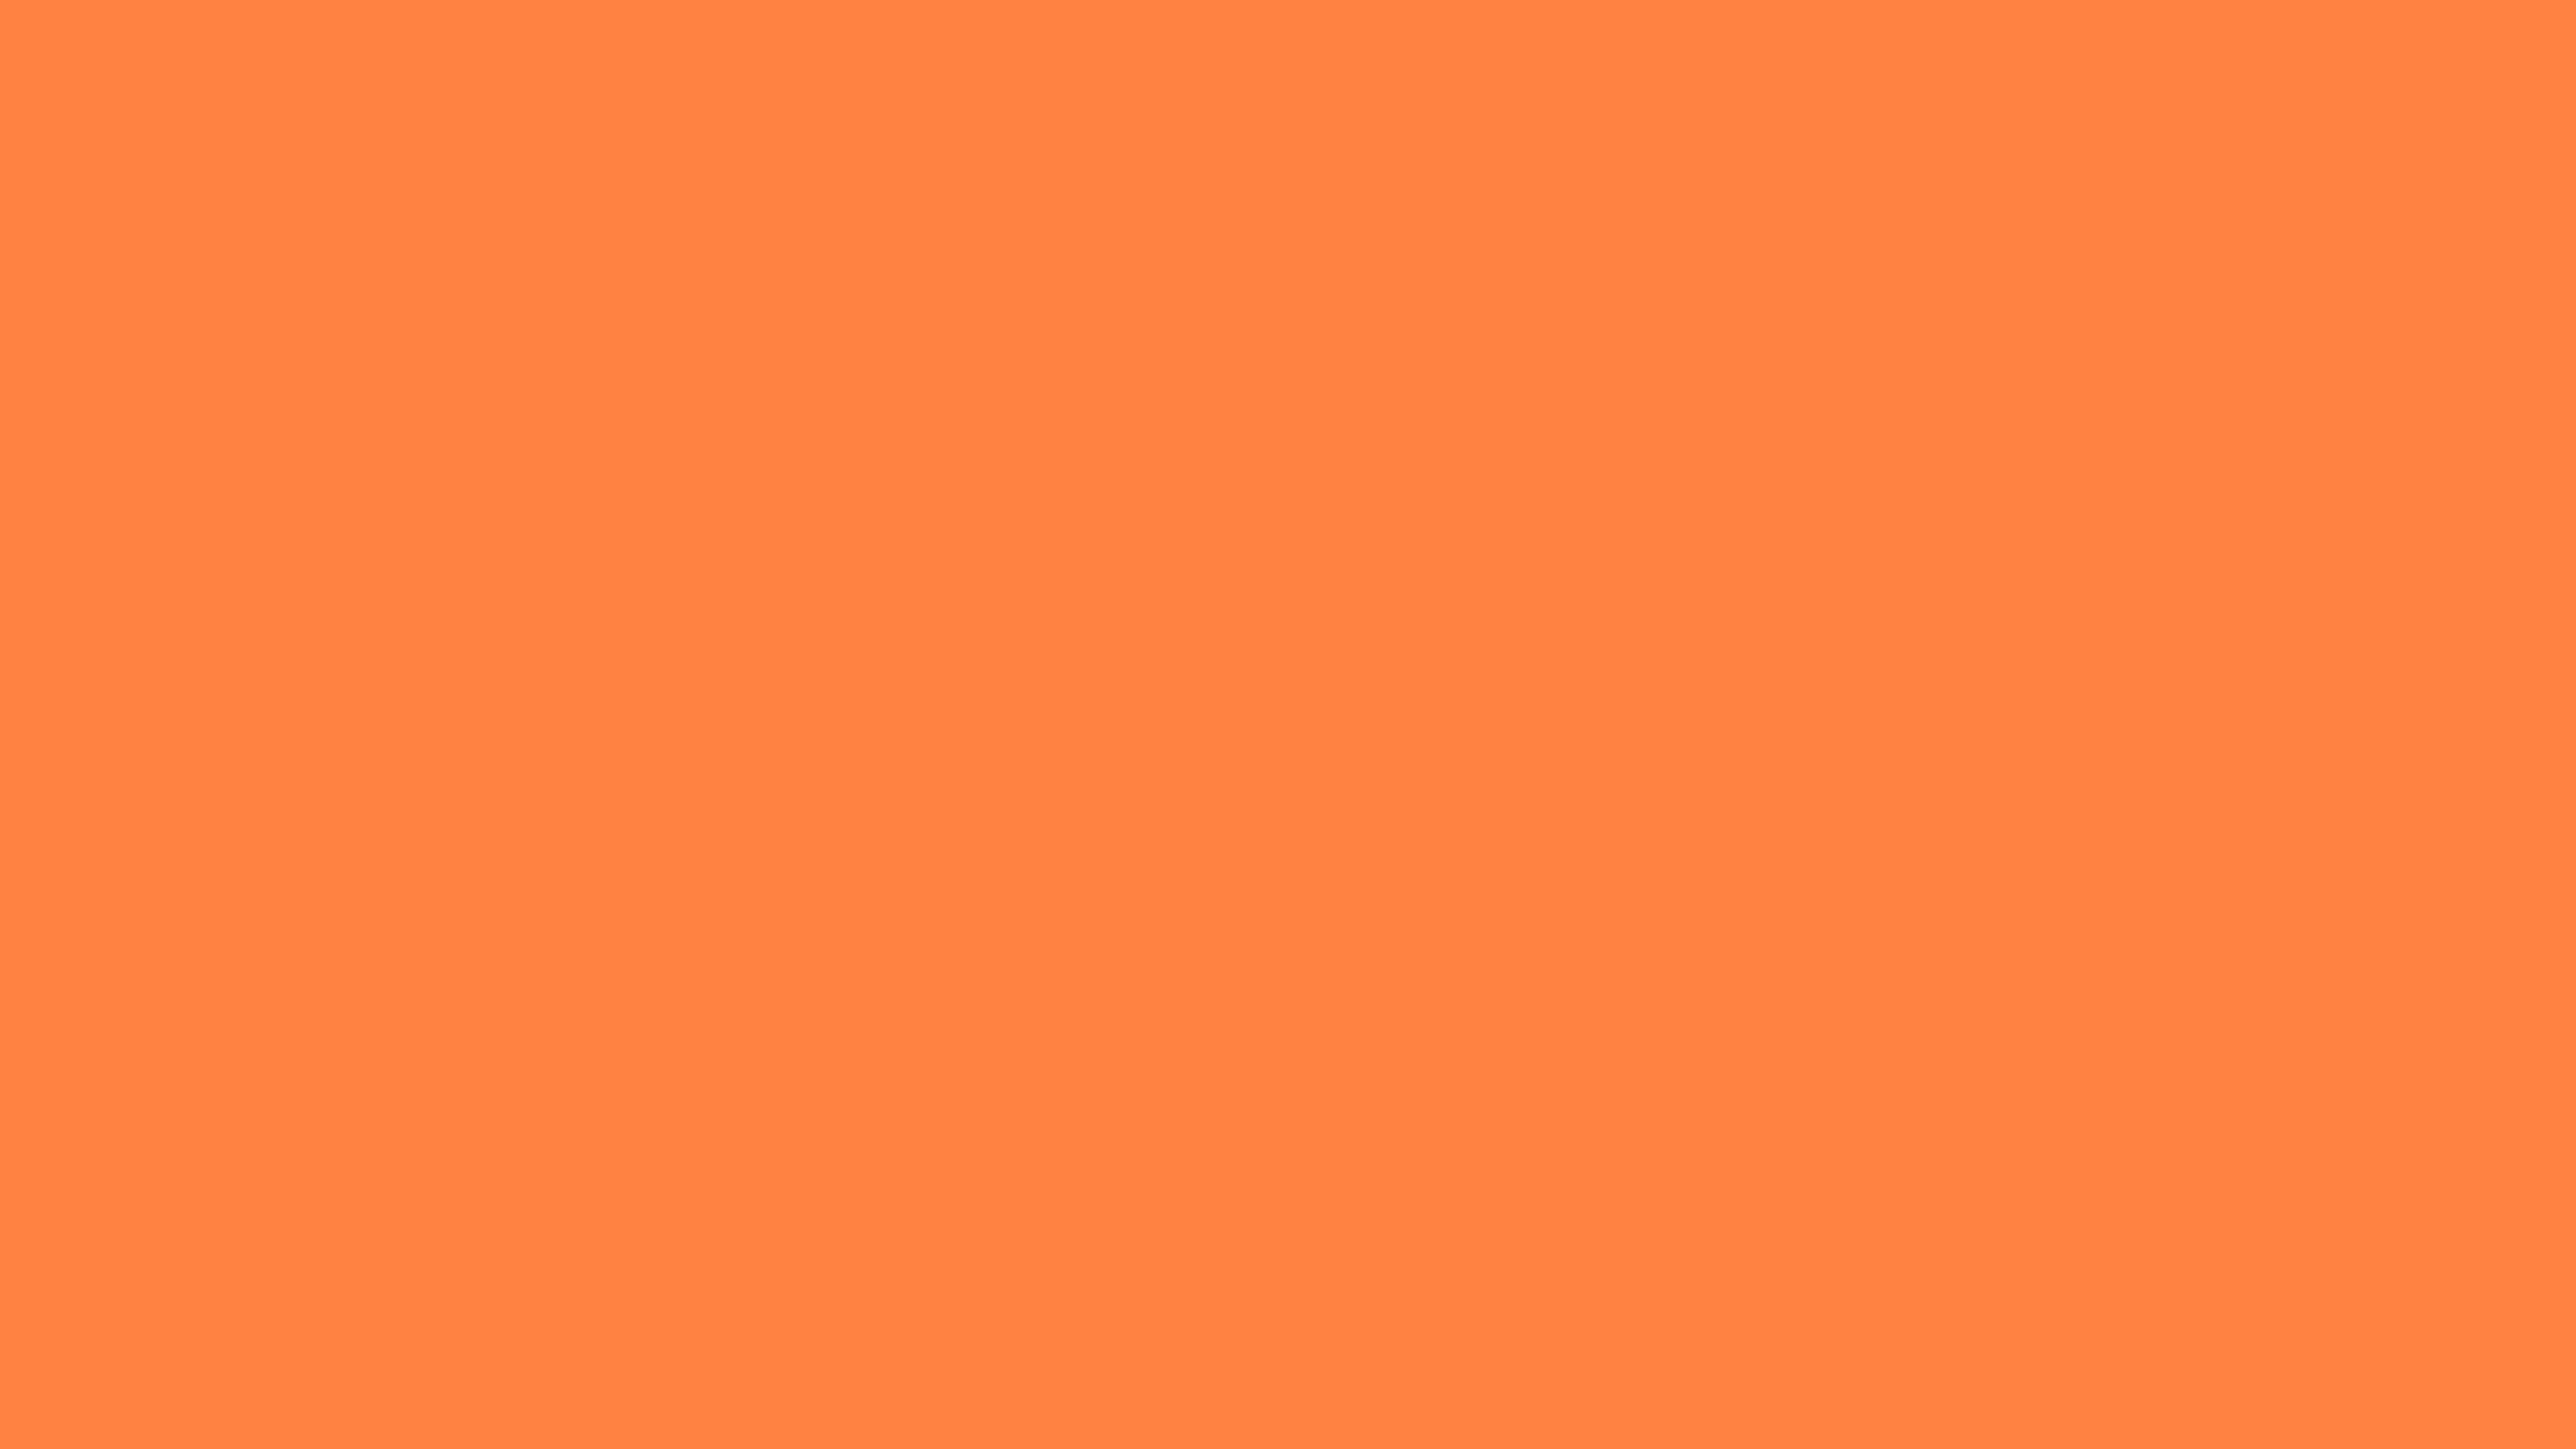 4096x2304 Mango Tango Solid Color Background